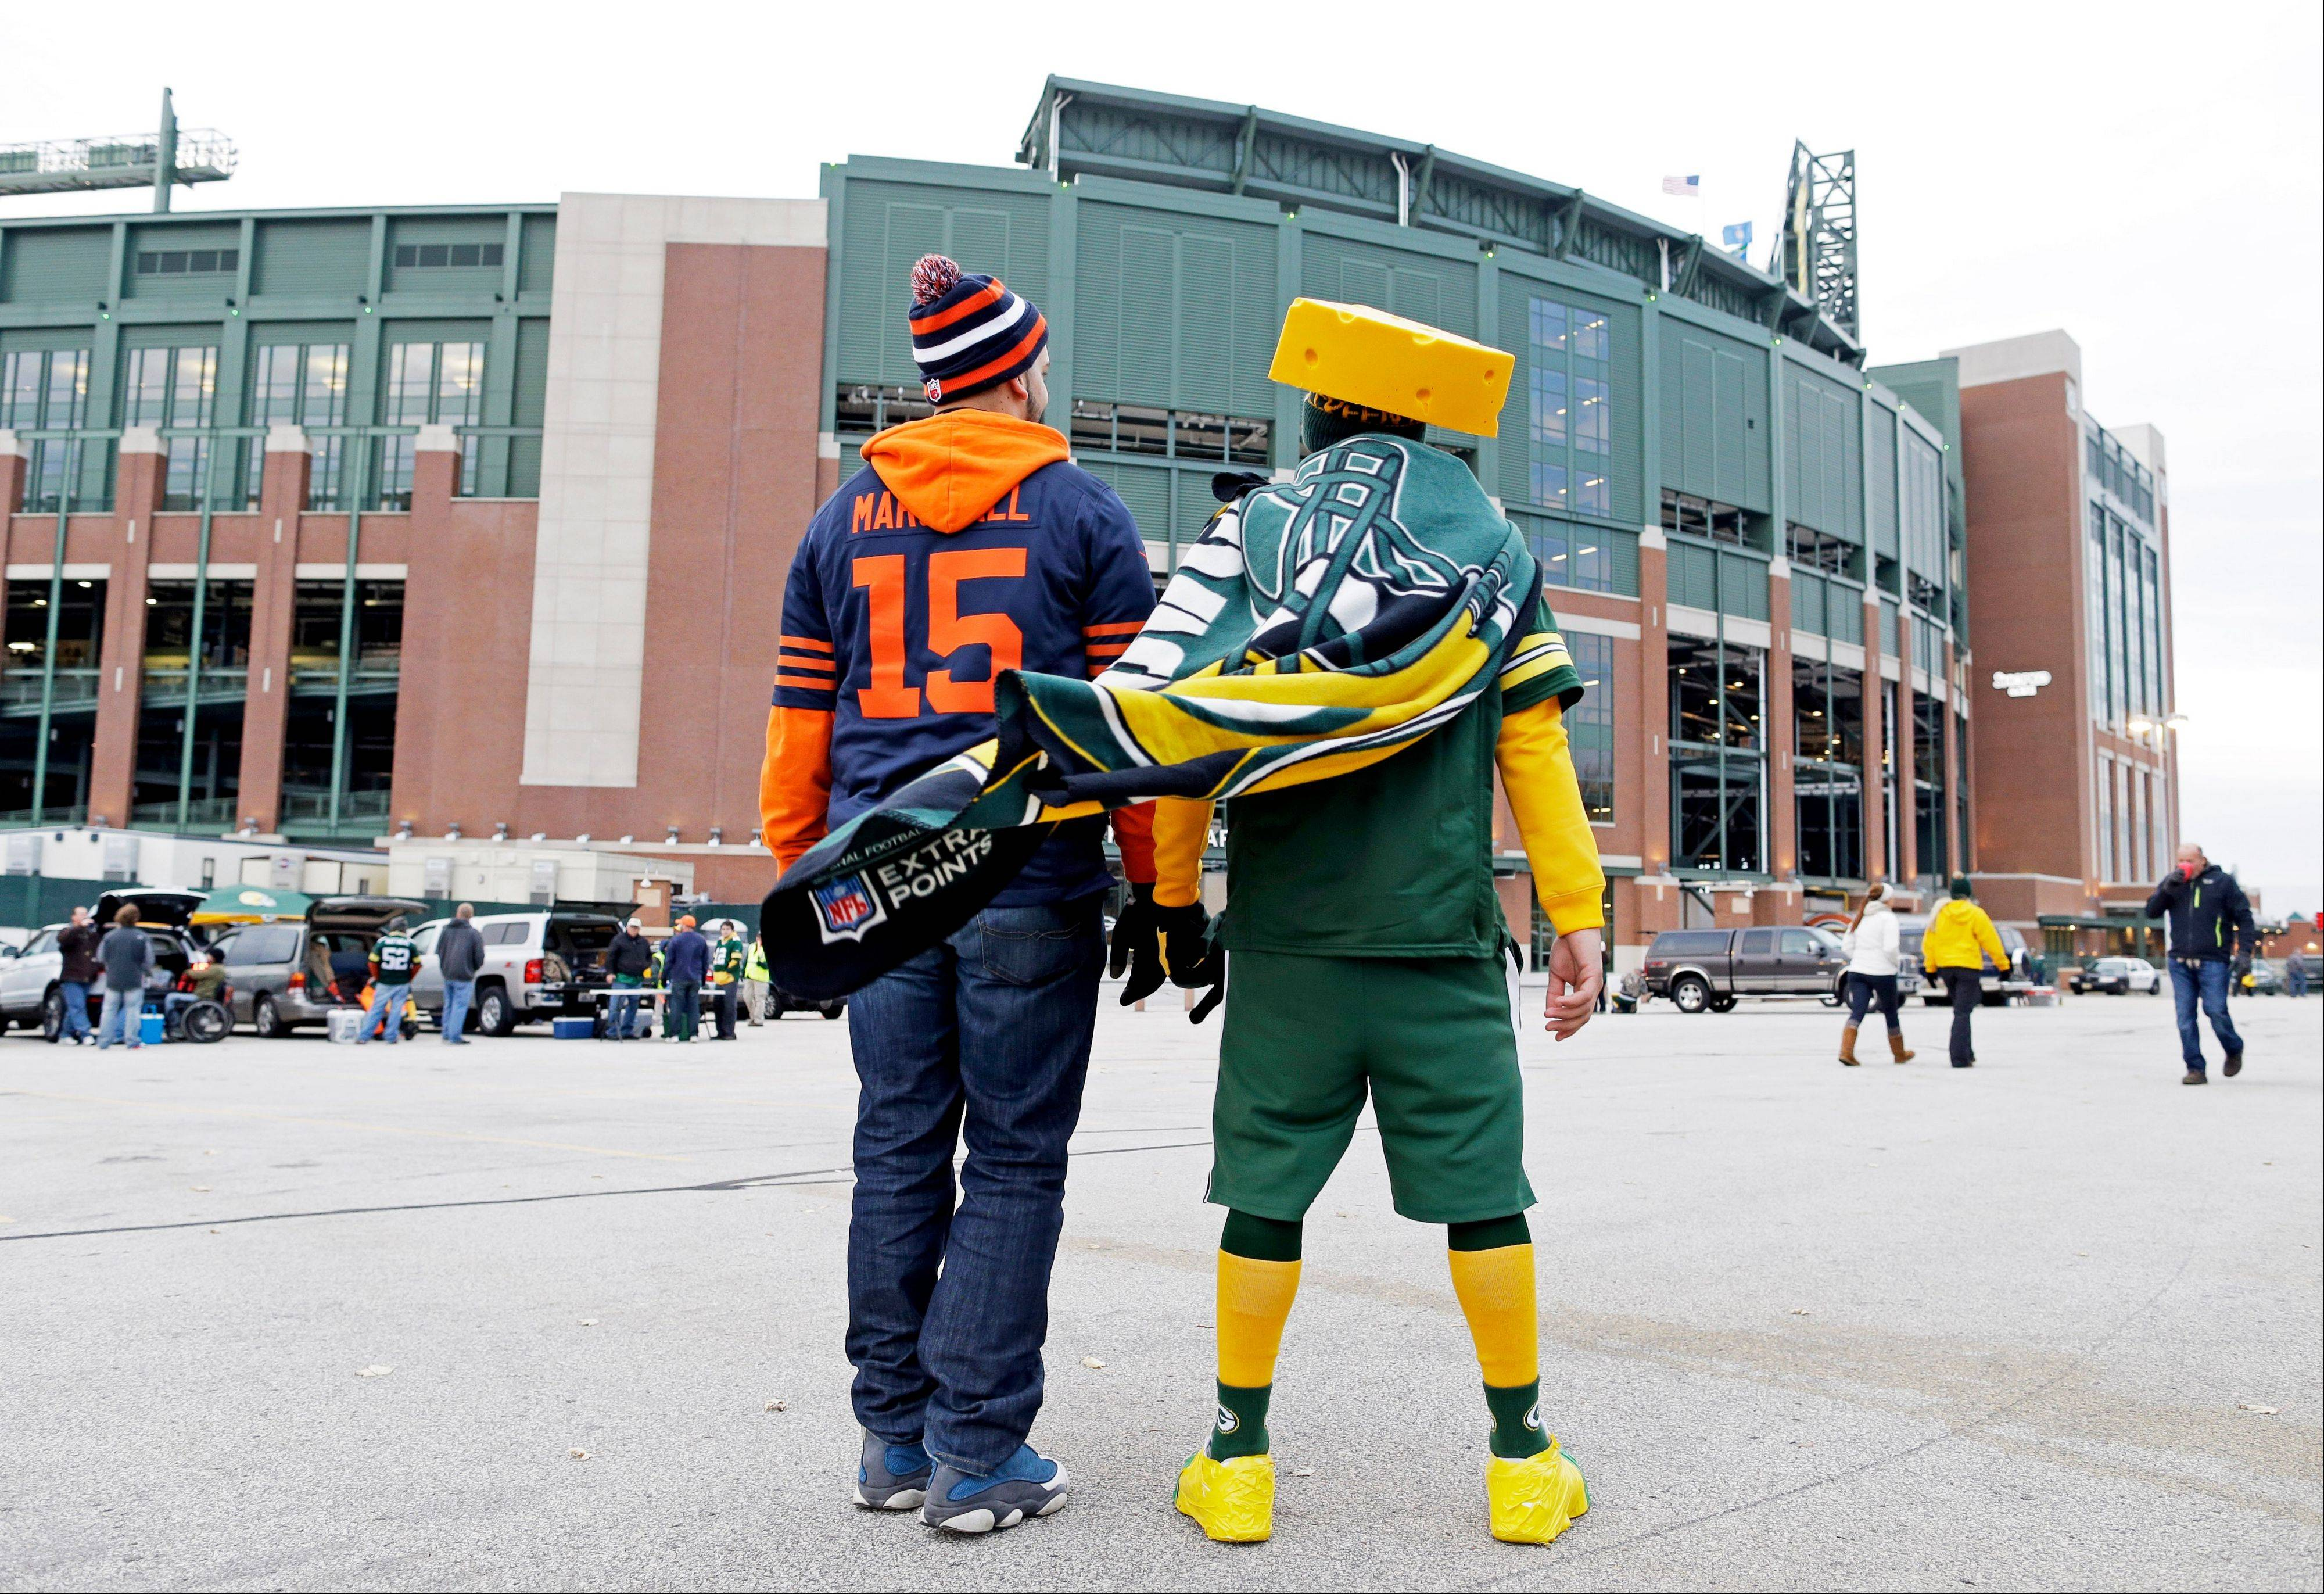 Fans make their way to Lambeau Field.